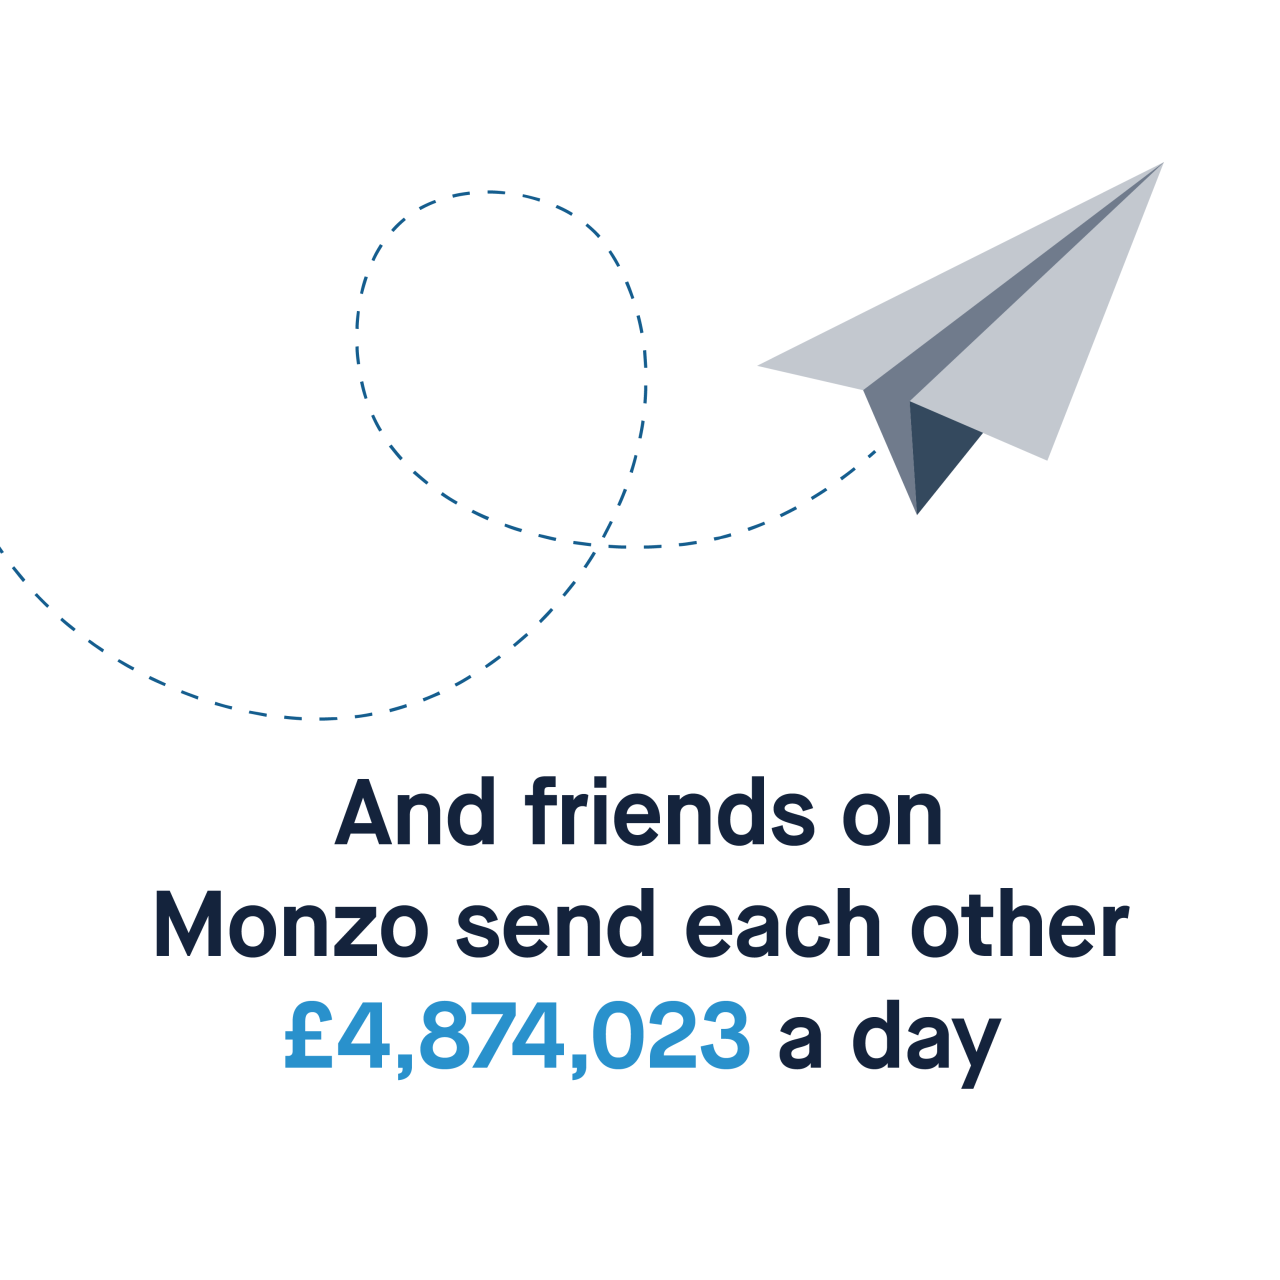 And friends on Monzo send each other £4,874,023 a day